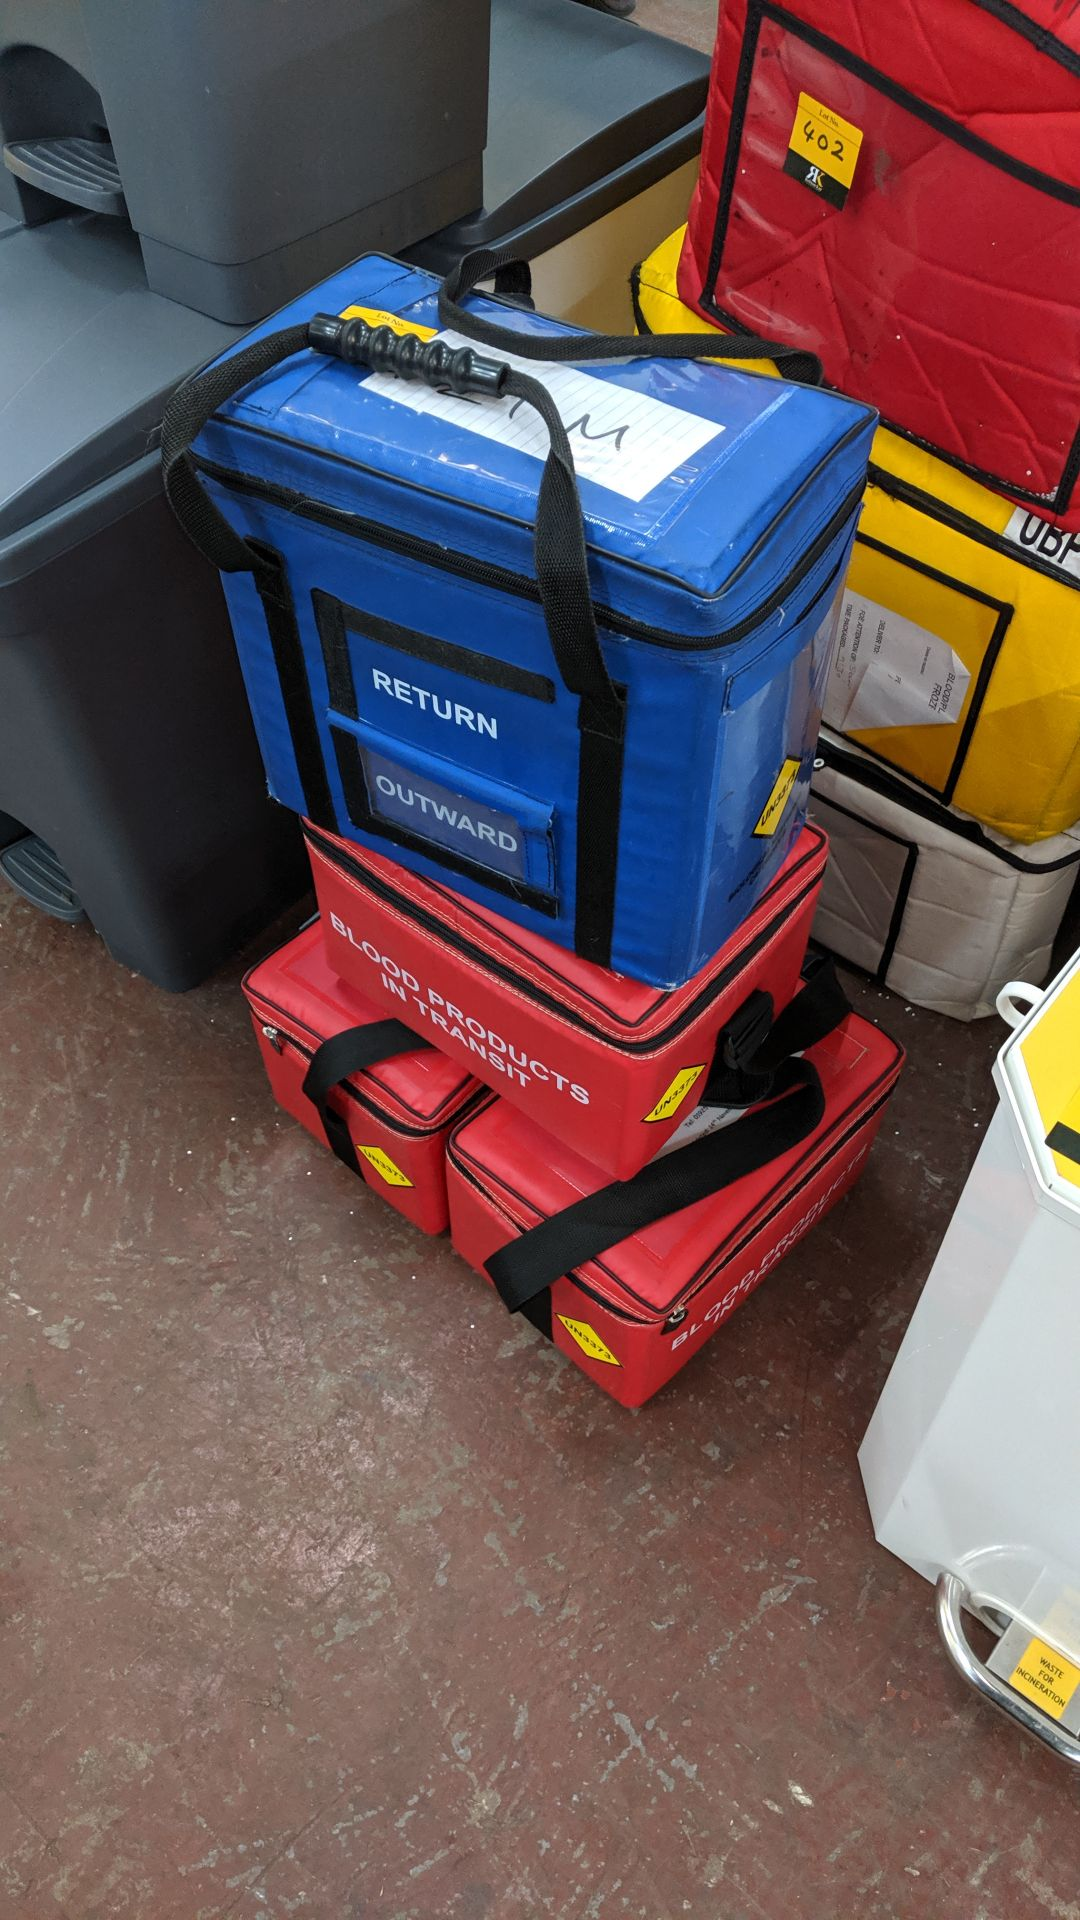 Lot 401 - 4 assorted blood/medical insulated carry bags. This is one of a large number of lots used/owned by